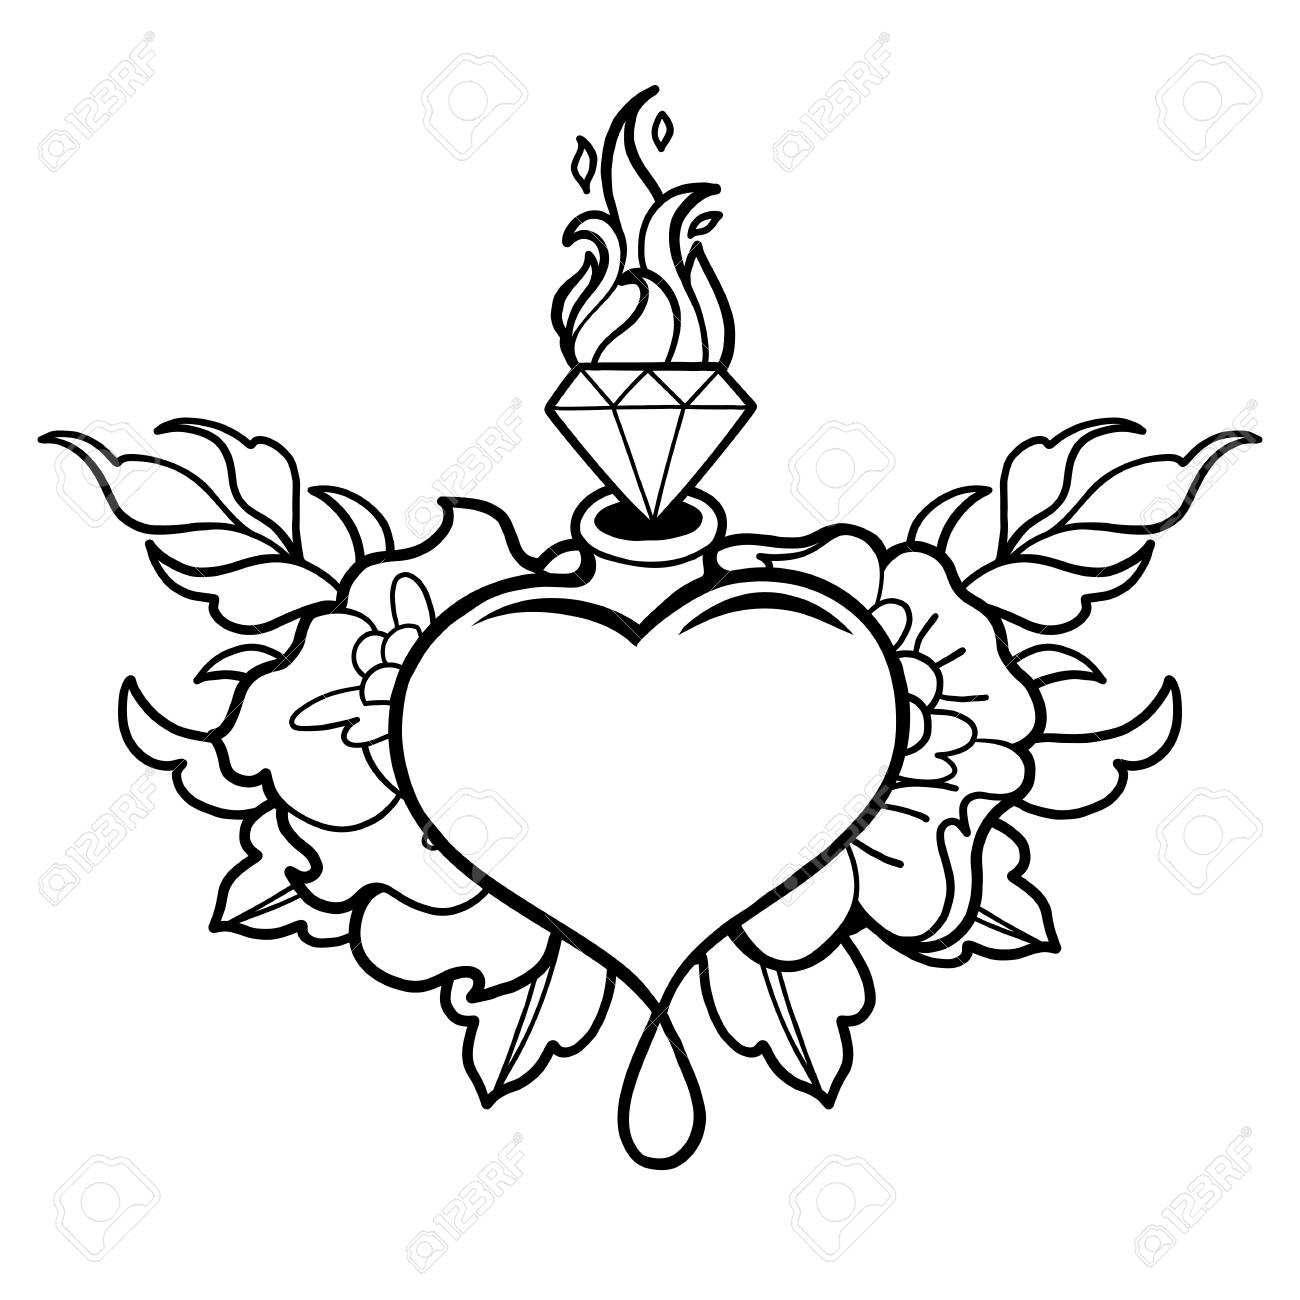 graphic heart with flaming gem and floral decorations vector Rockabilly Bands graphic heart with flaming gem and floral decorations vector art for old school tattoo design